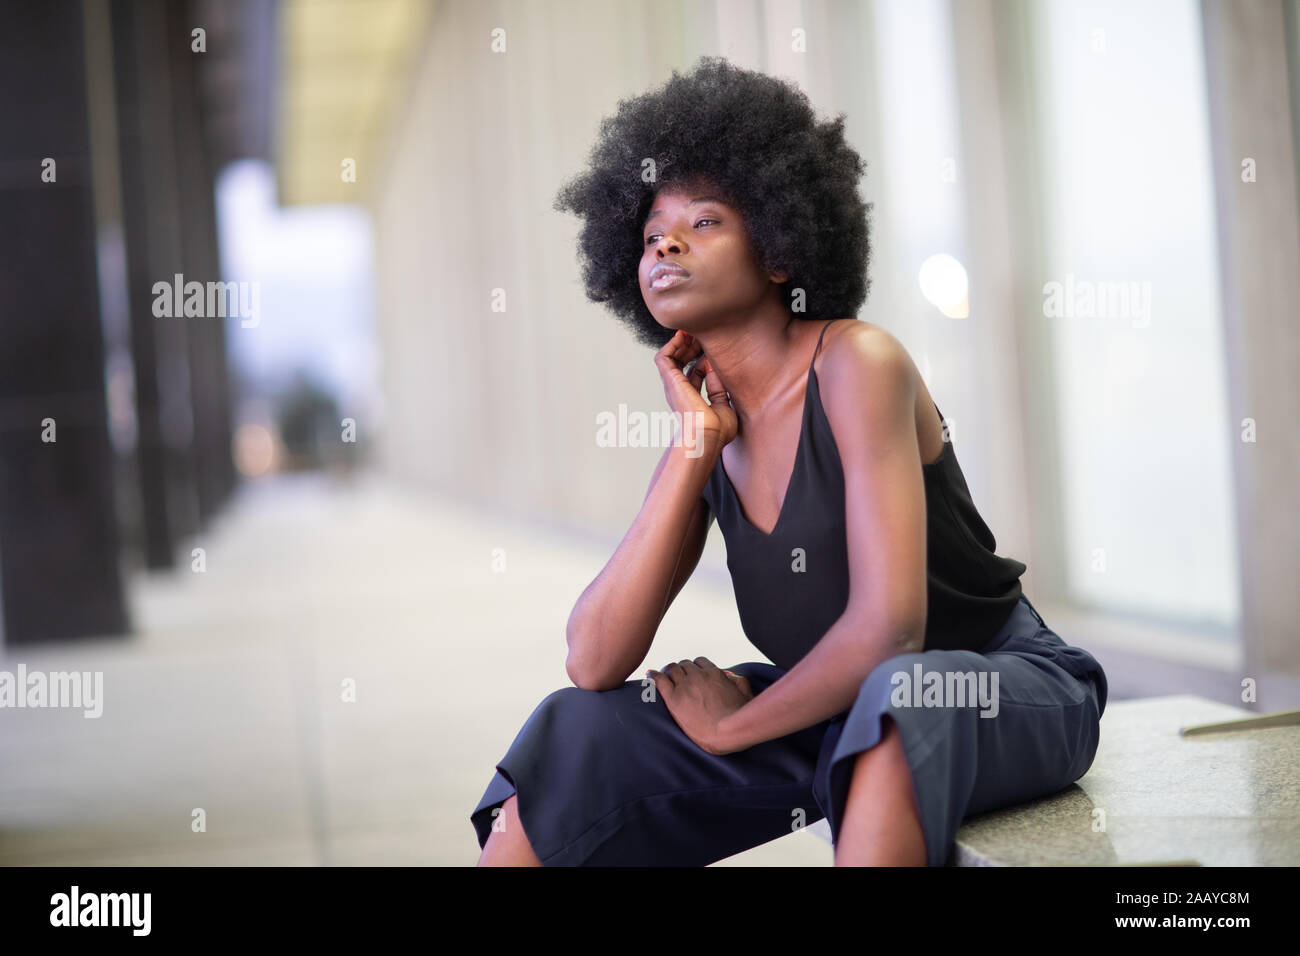 Pretty young African American woman on city streets, sitting on the bench Stock Photo